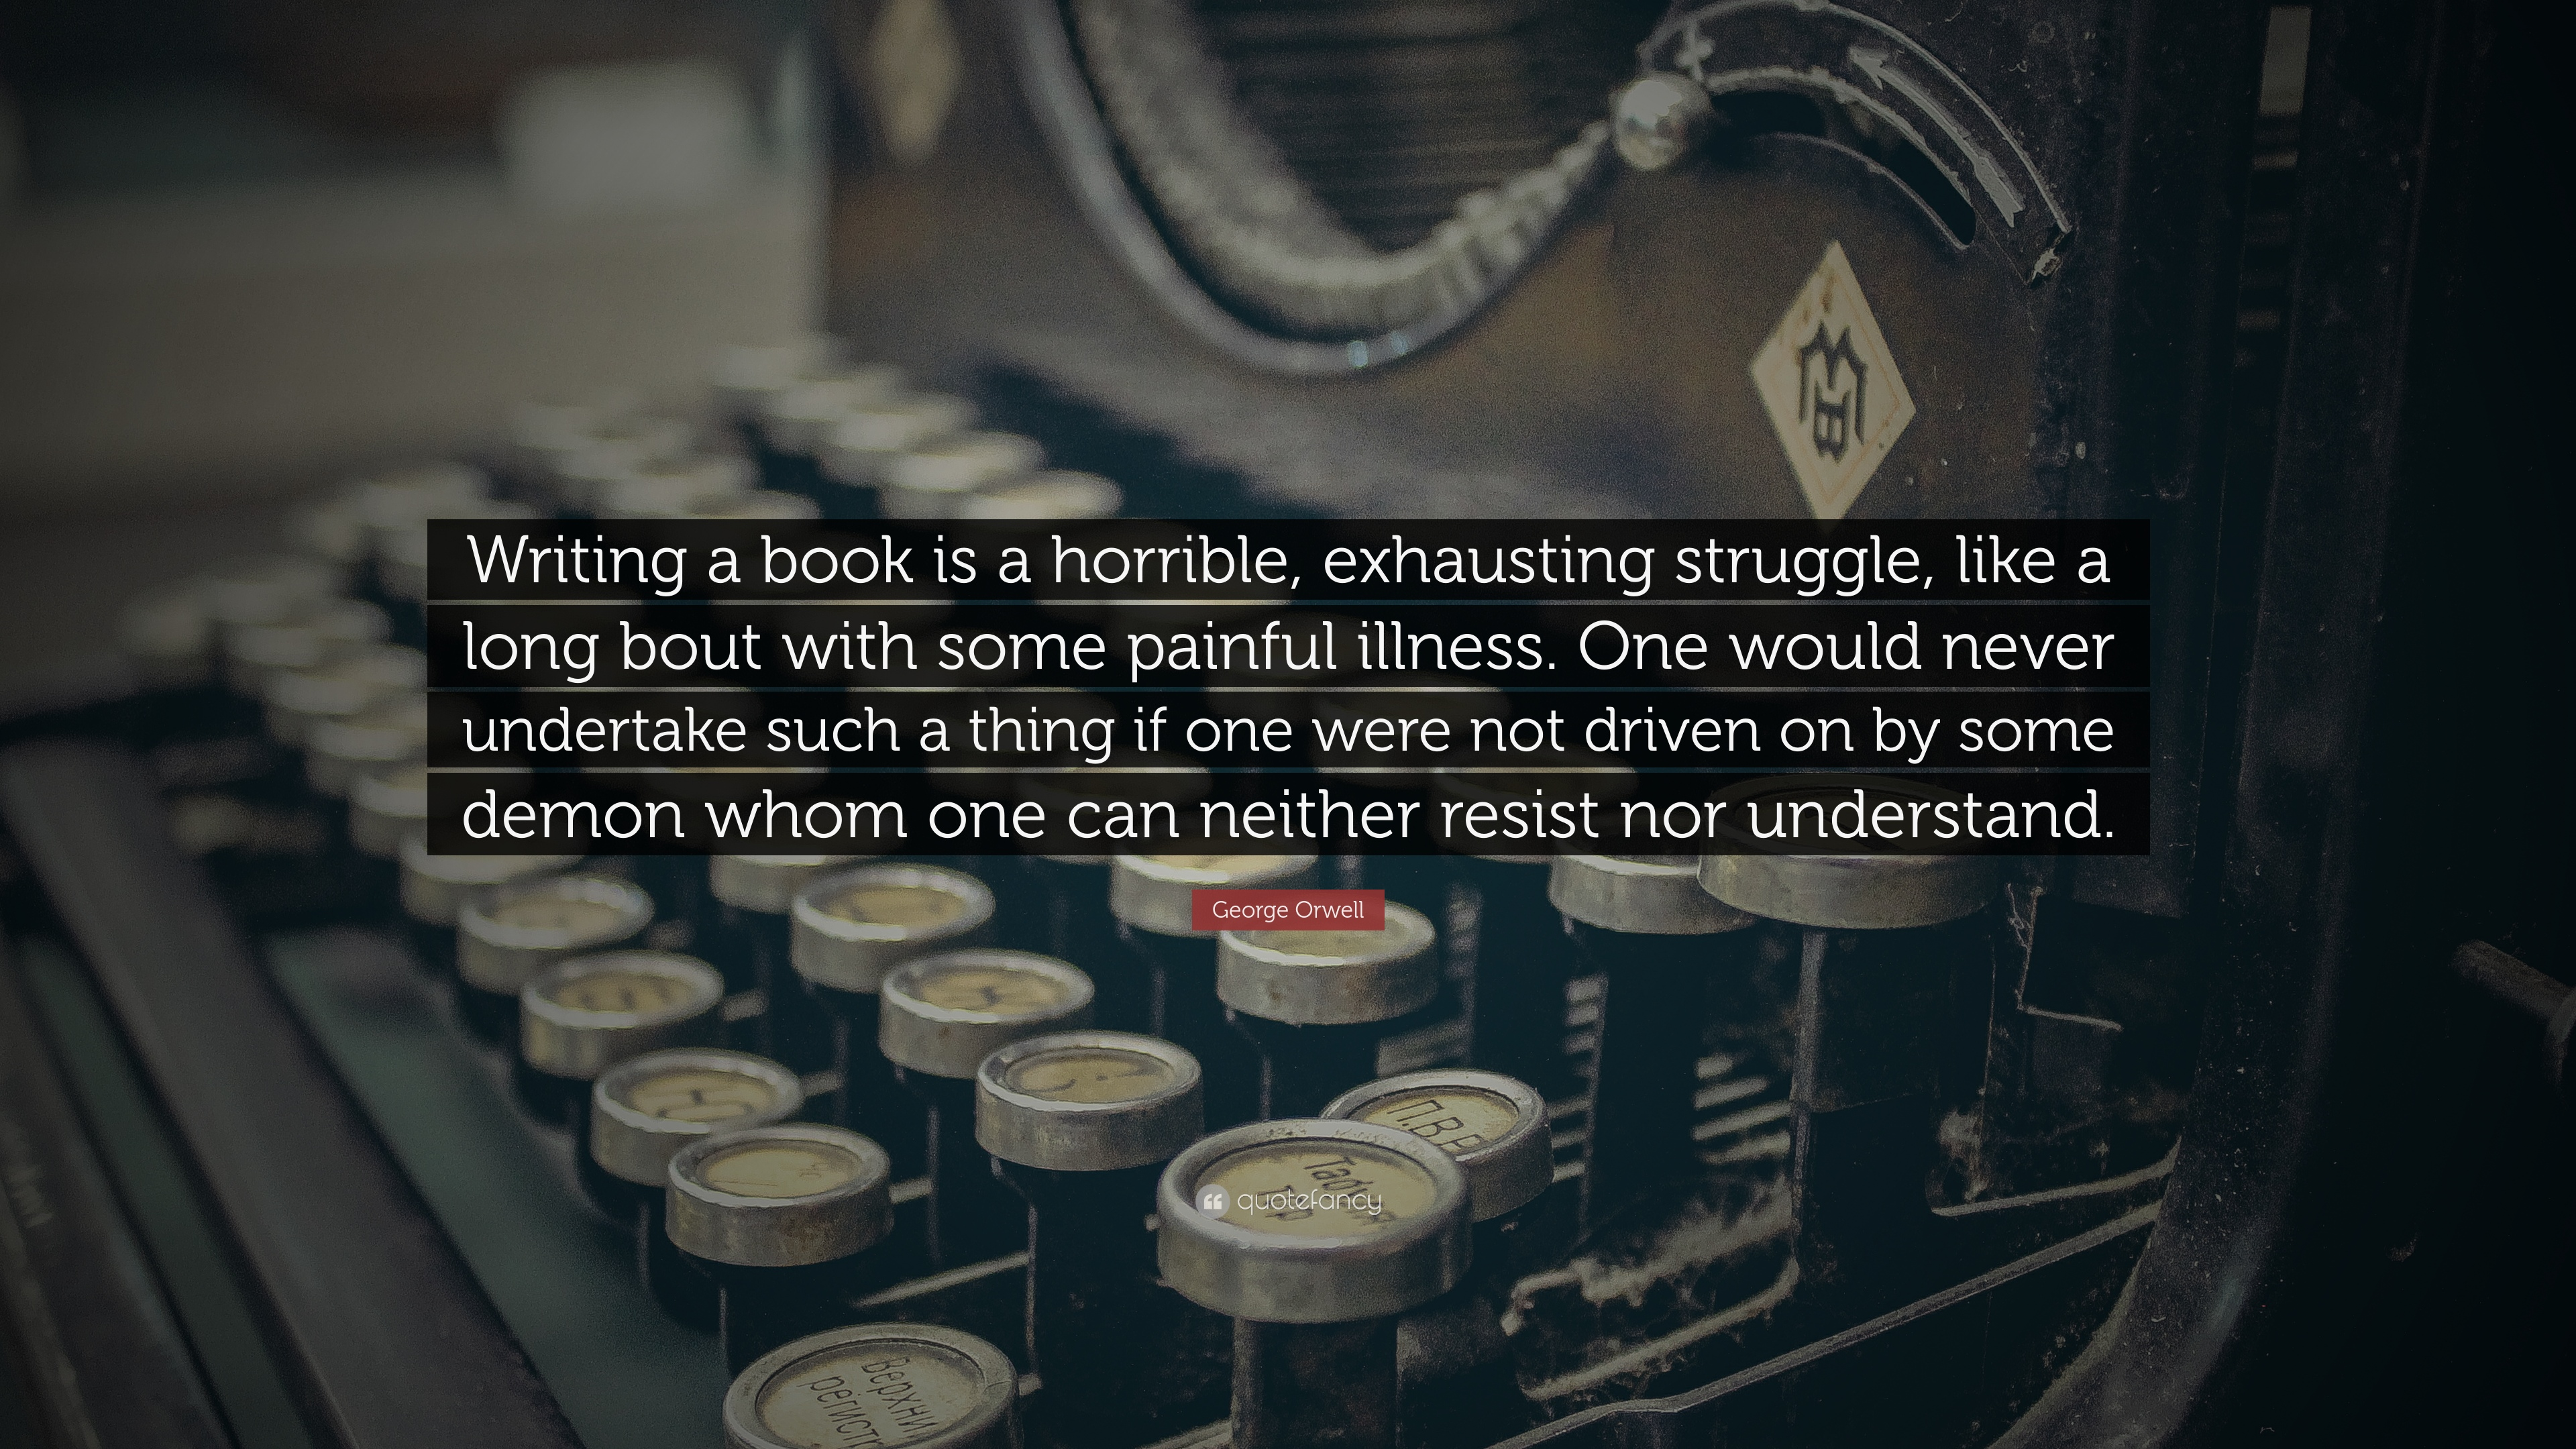 george orwell quote �writing a book is a horrible